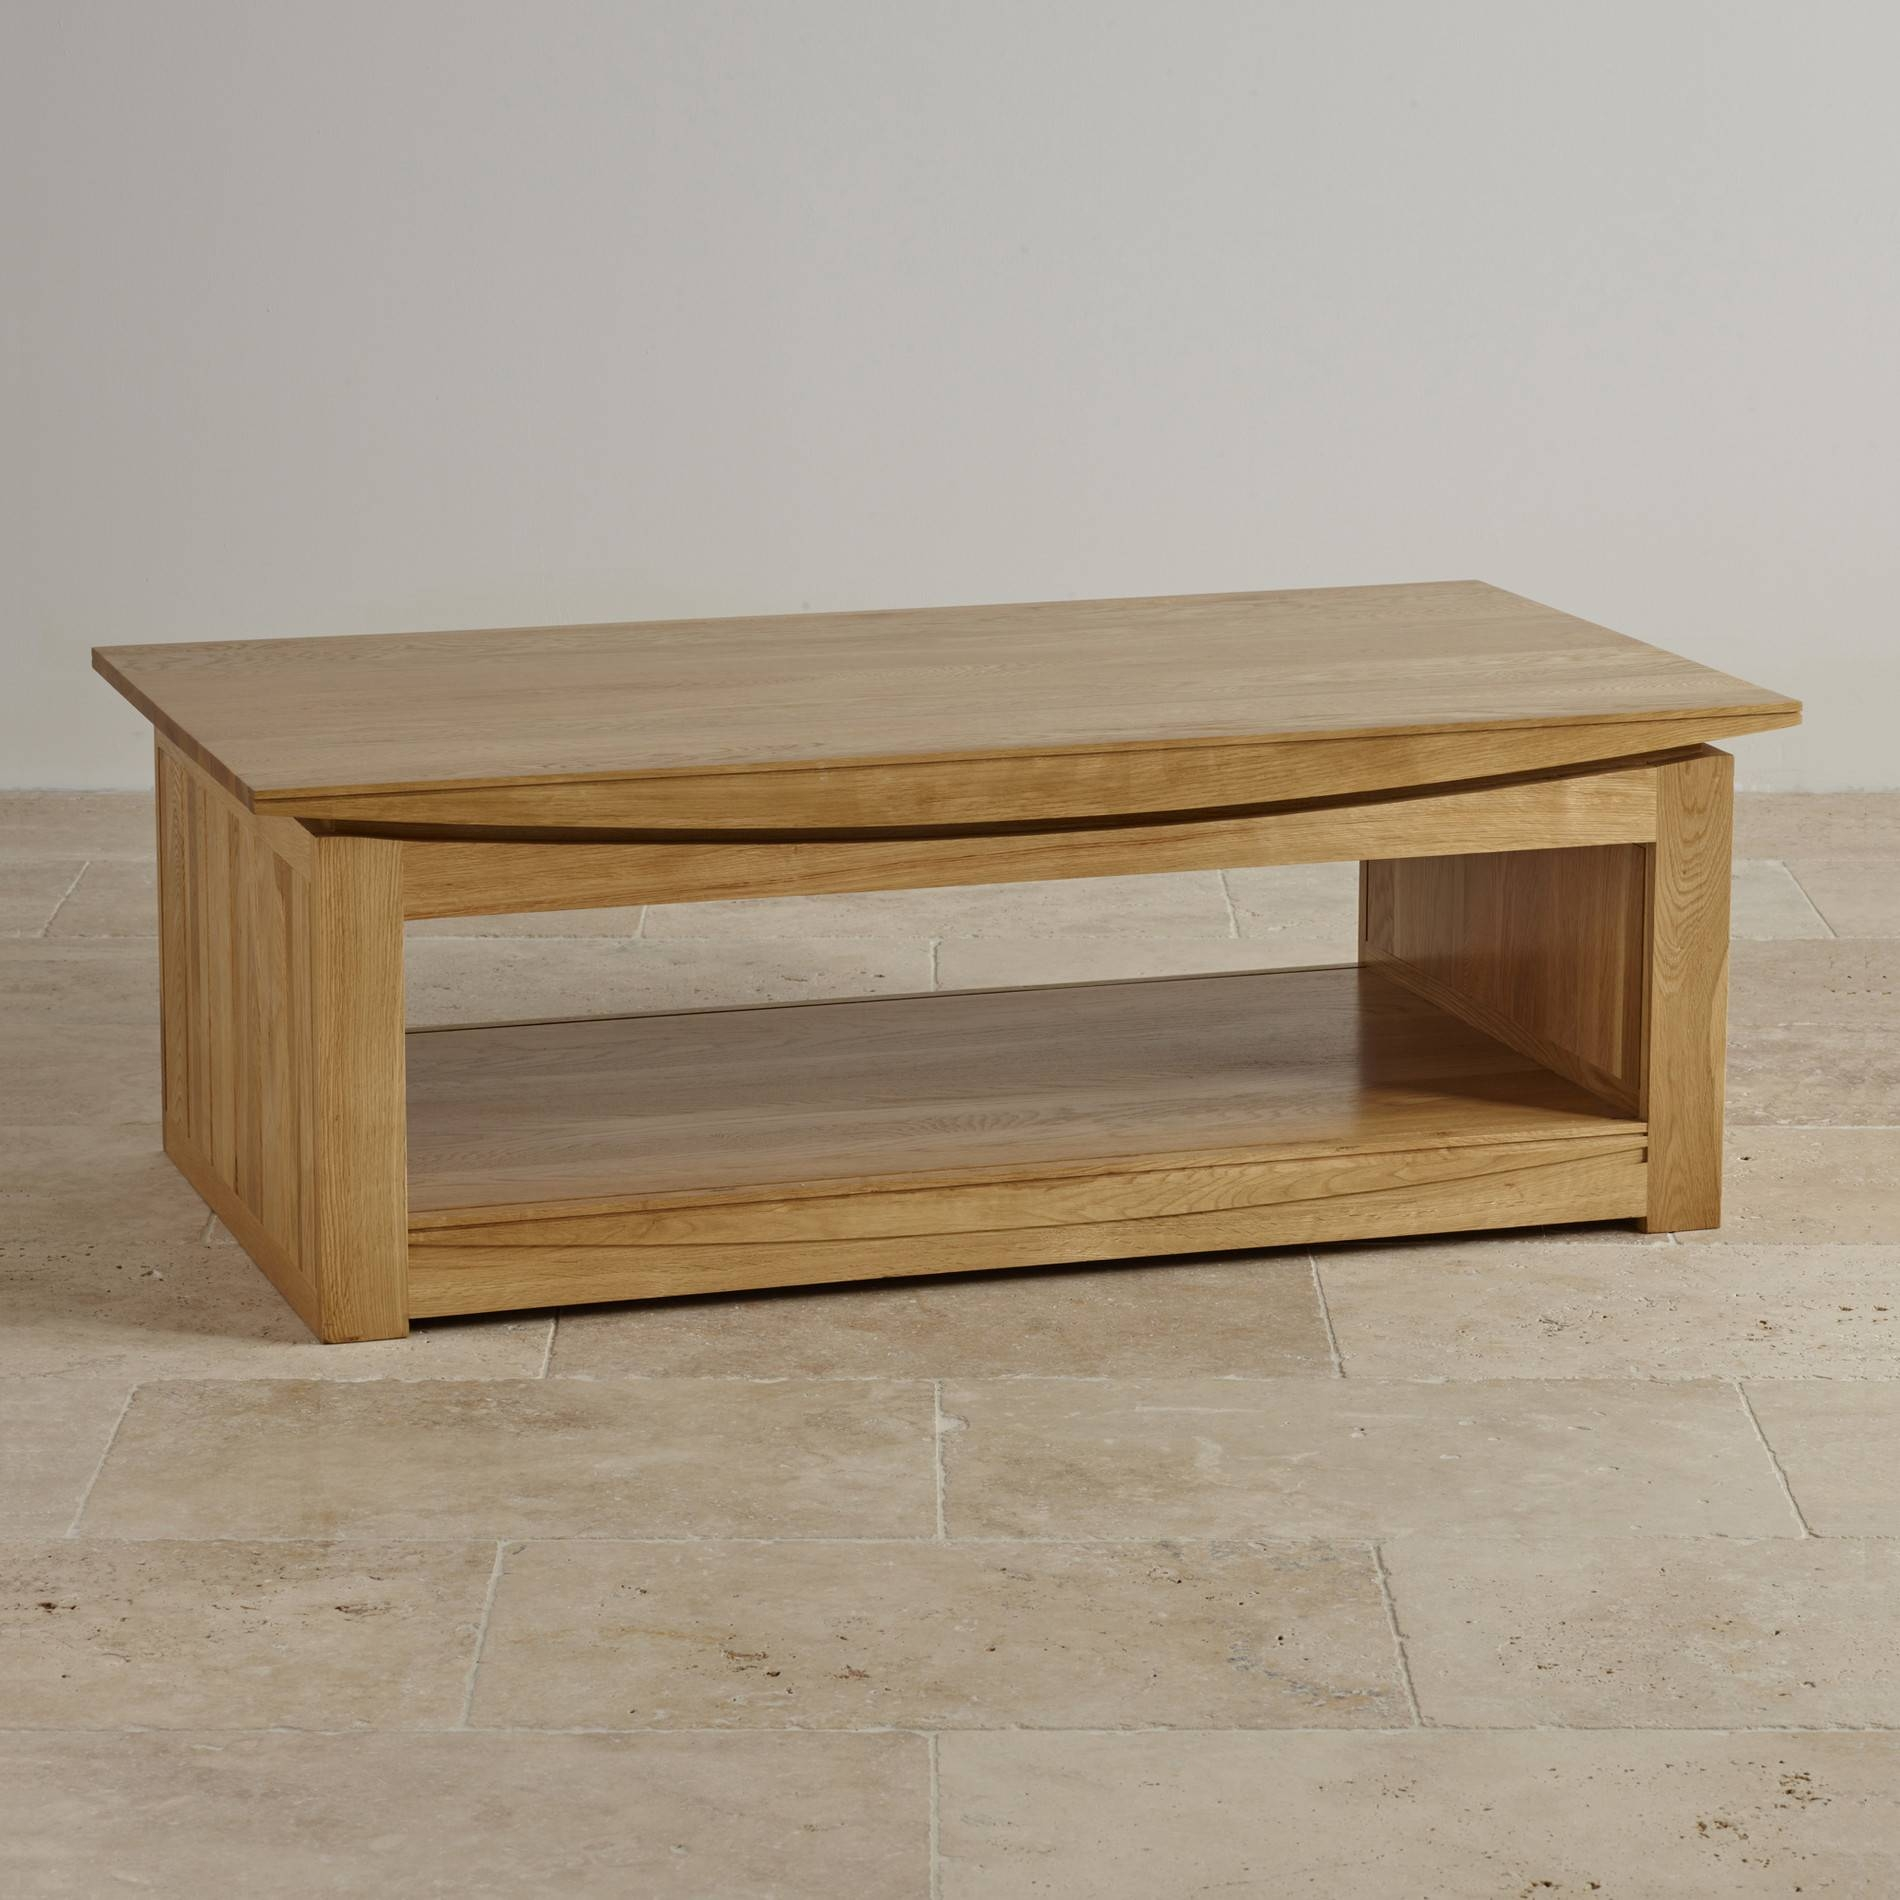 Coffee Tables | Free Delivery Available | Oak Furniture Land within Solid Wood Coffee Tables (Image 9 of 30)